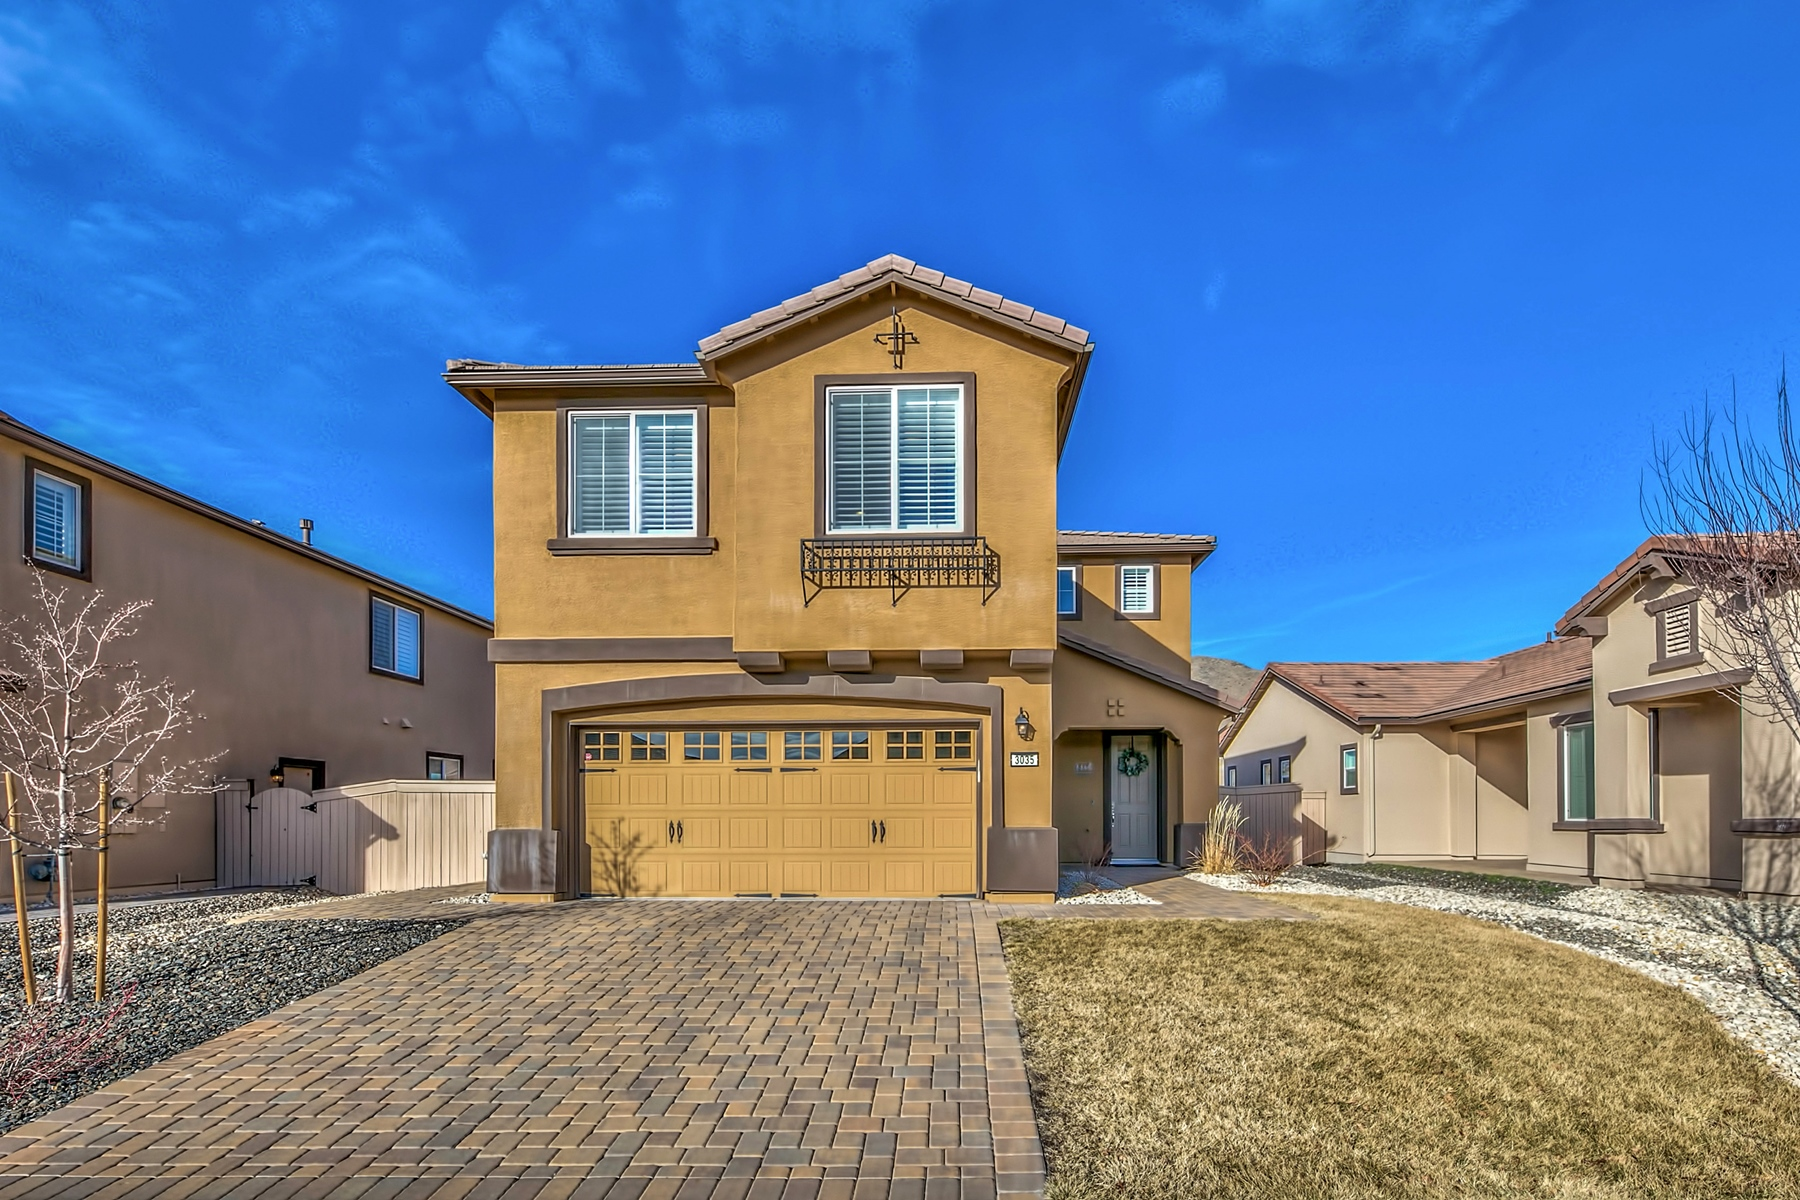 Single Family Home for Active at 3035 Show Jumper Lane, Reno, Nevada 3035 Show Jumper Lane Reno, Nevada 89521 United States